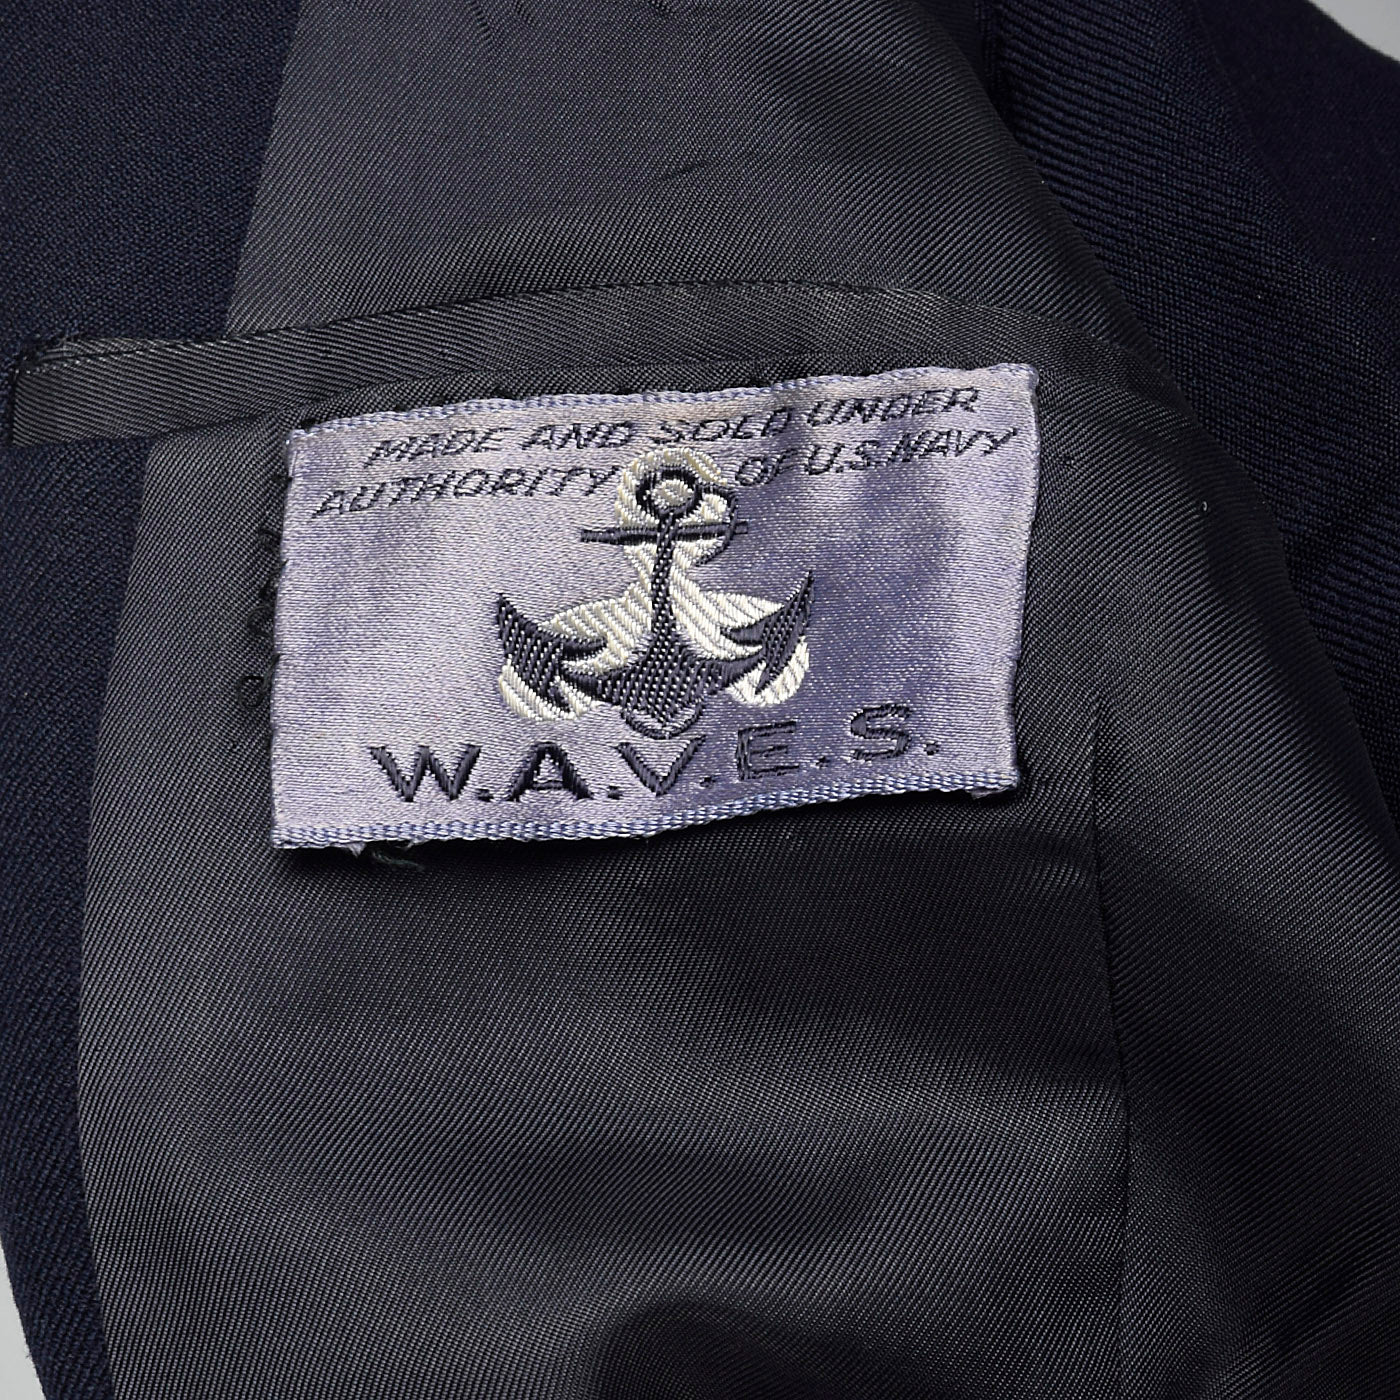 1950s Waves US Navy Military Wool Jacket in Navy Blue